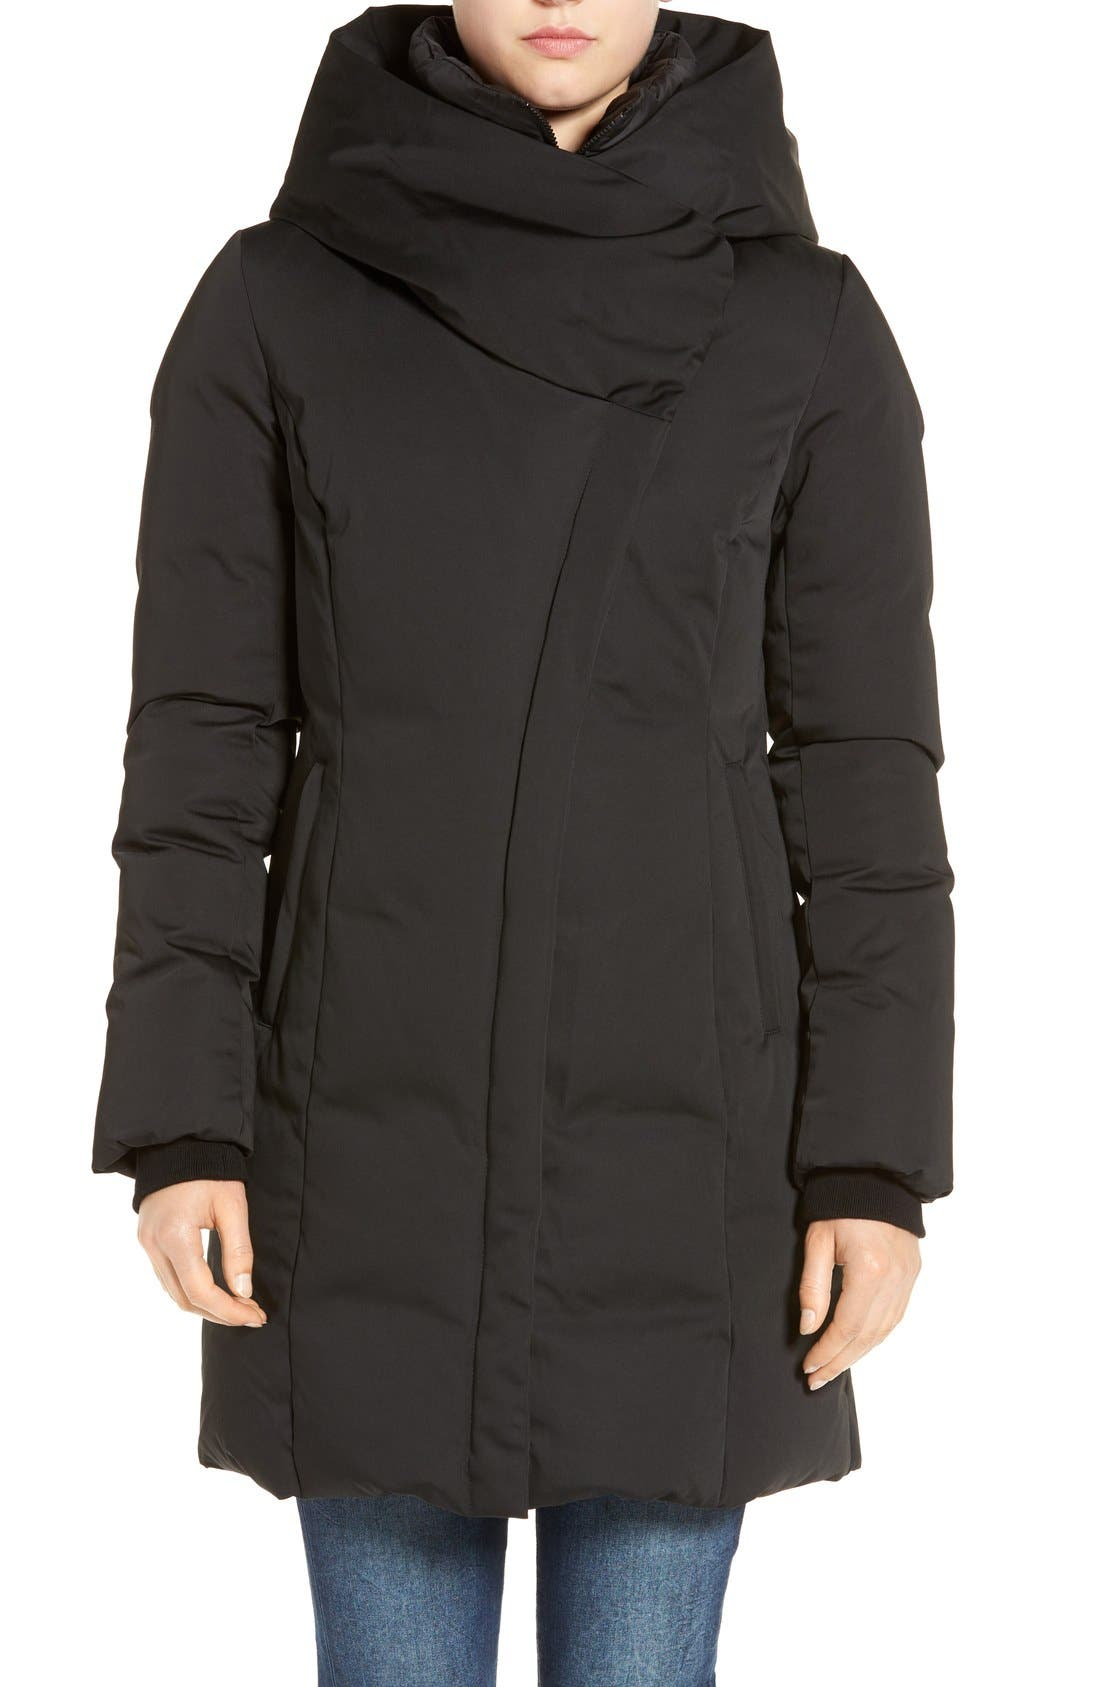 Alternate Image 4  - Soia & Kyo Water Resistant Hooded Down Walking Coat